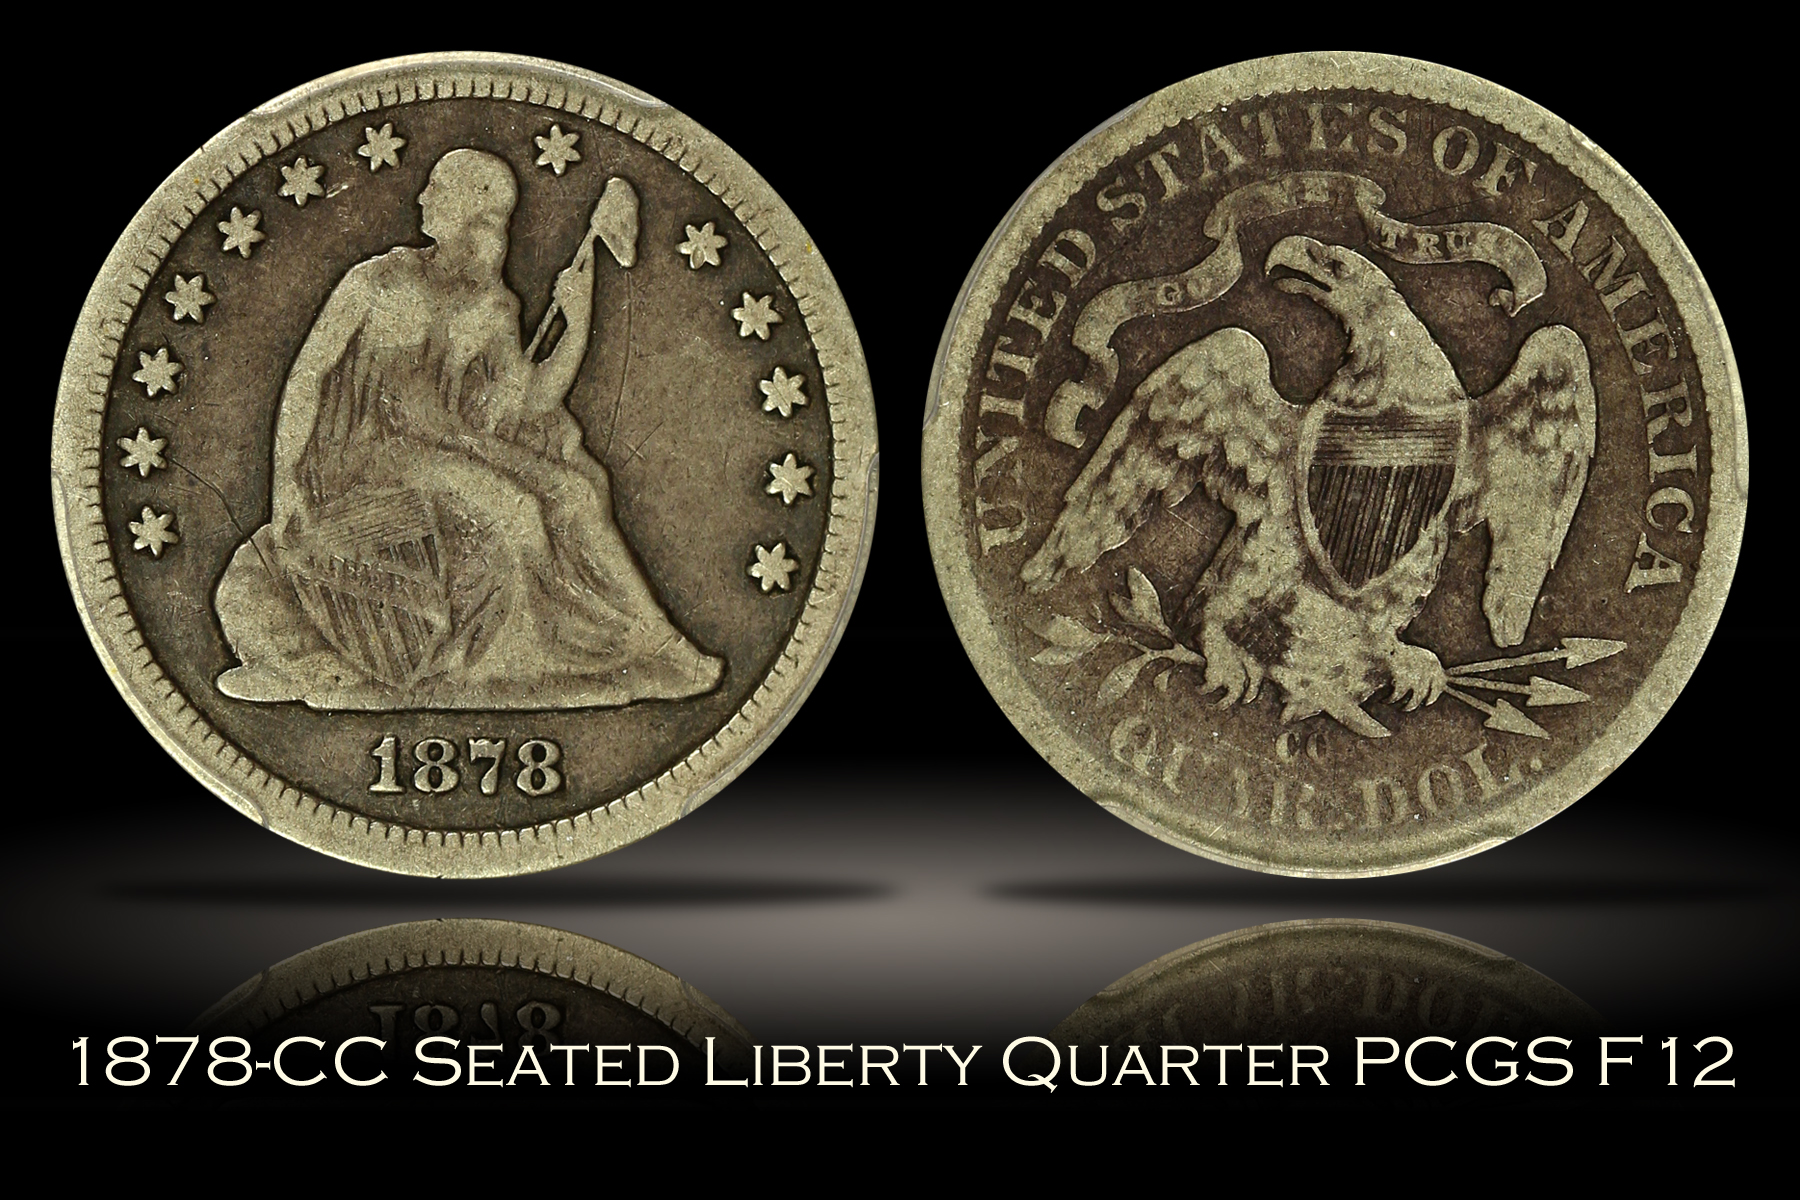 1878-CC Seated Liberty Quarter PCGS F12